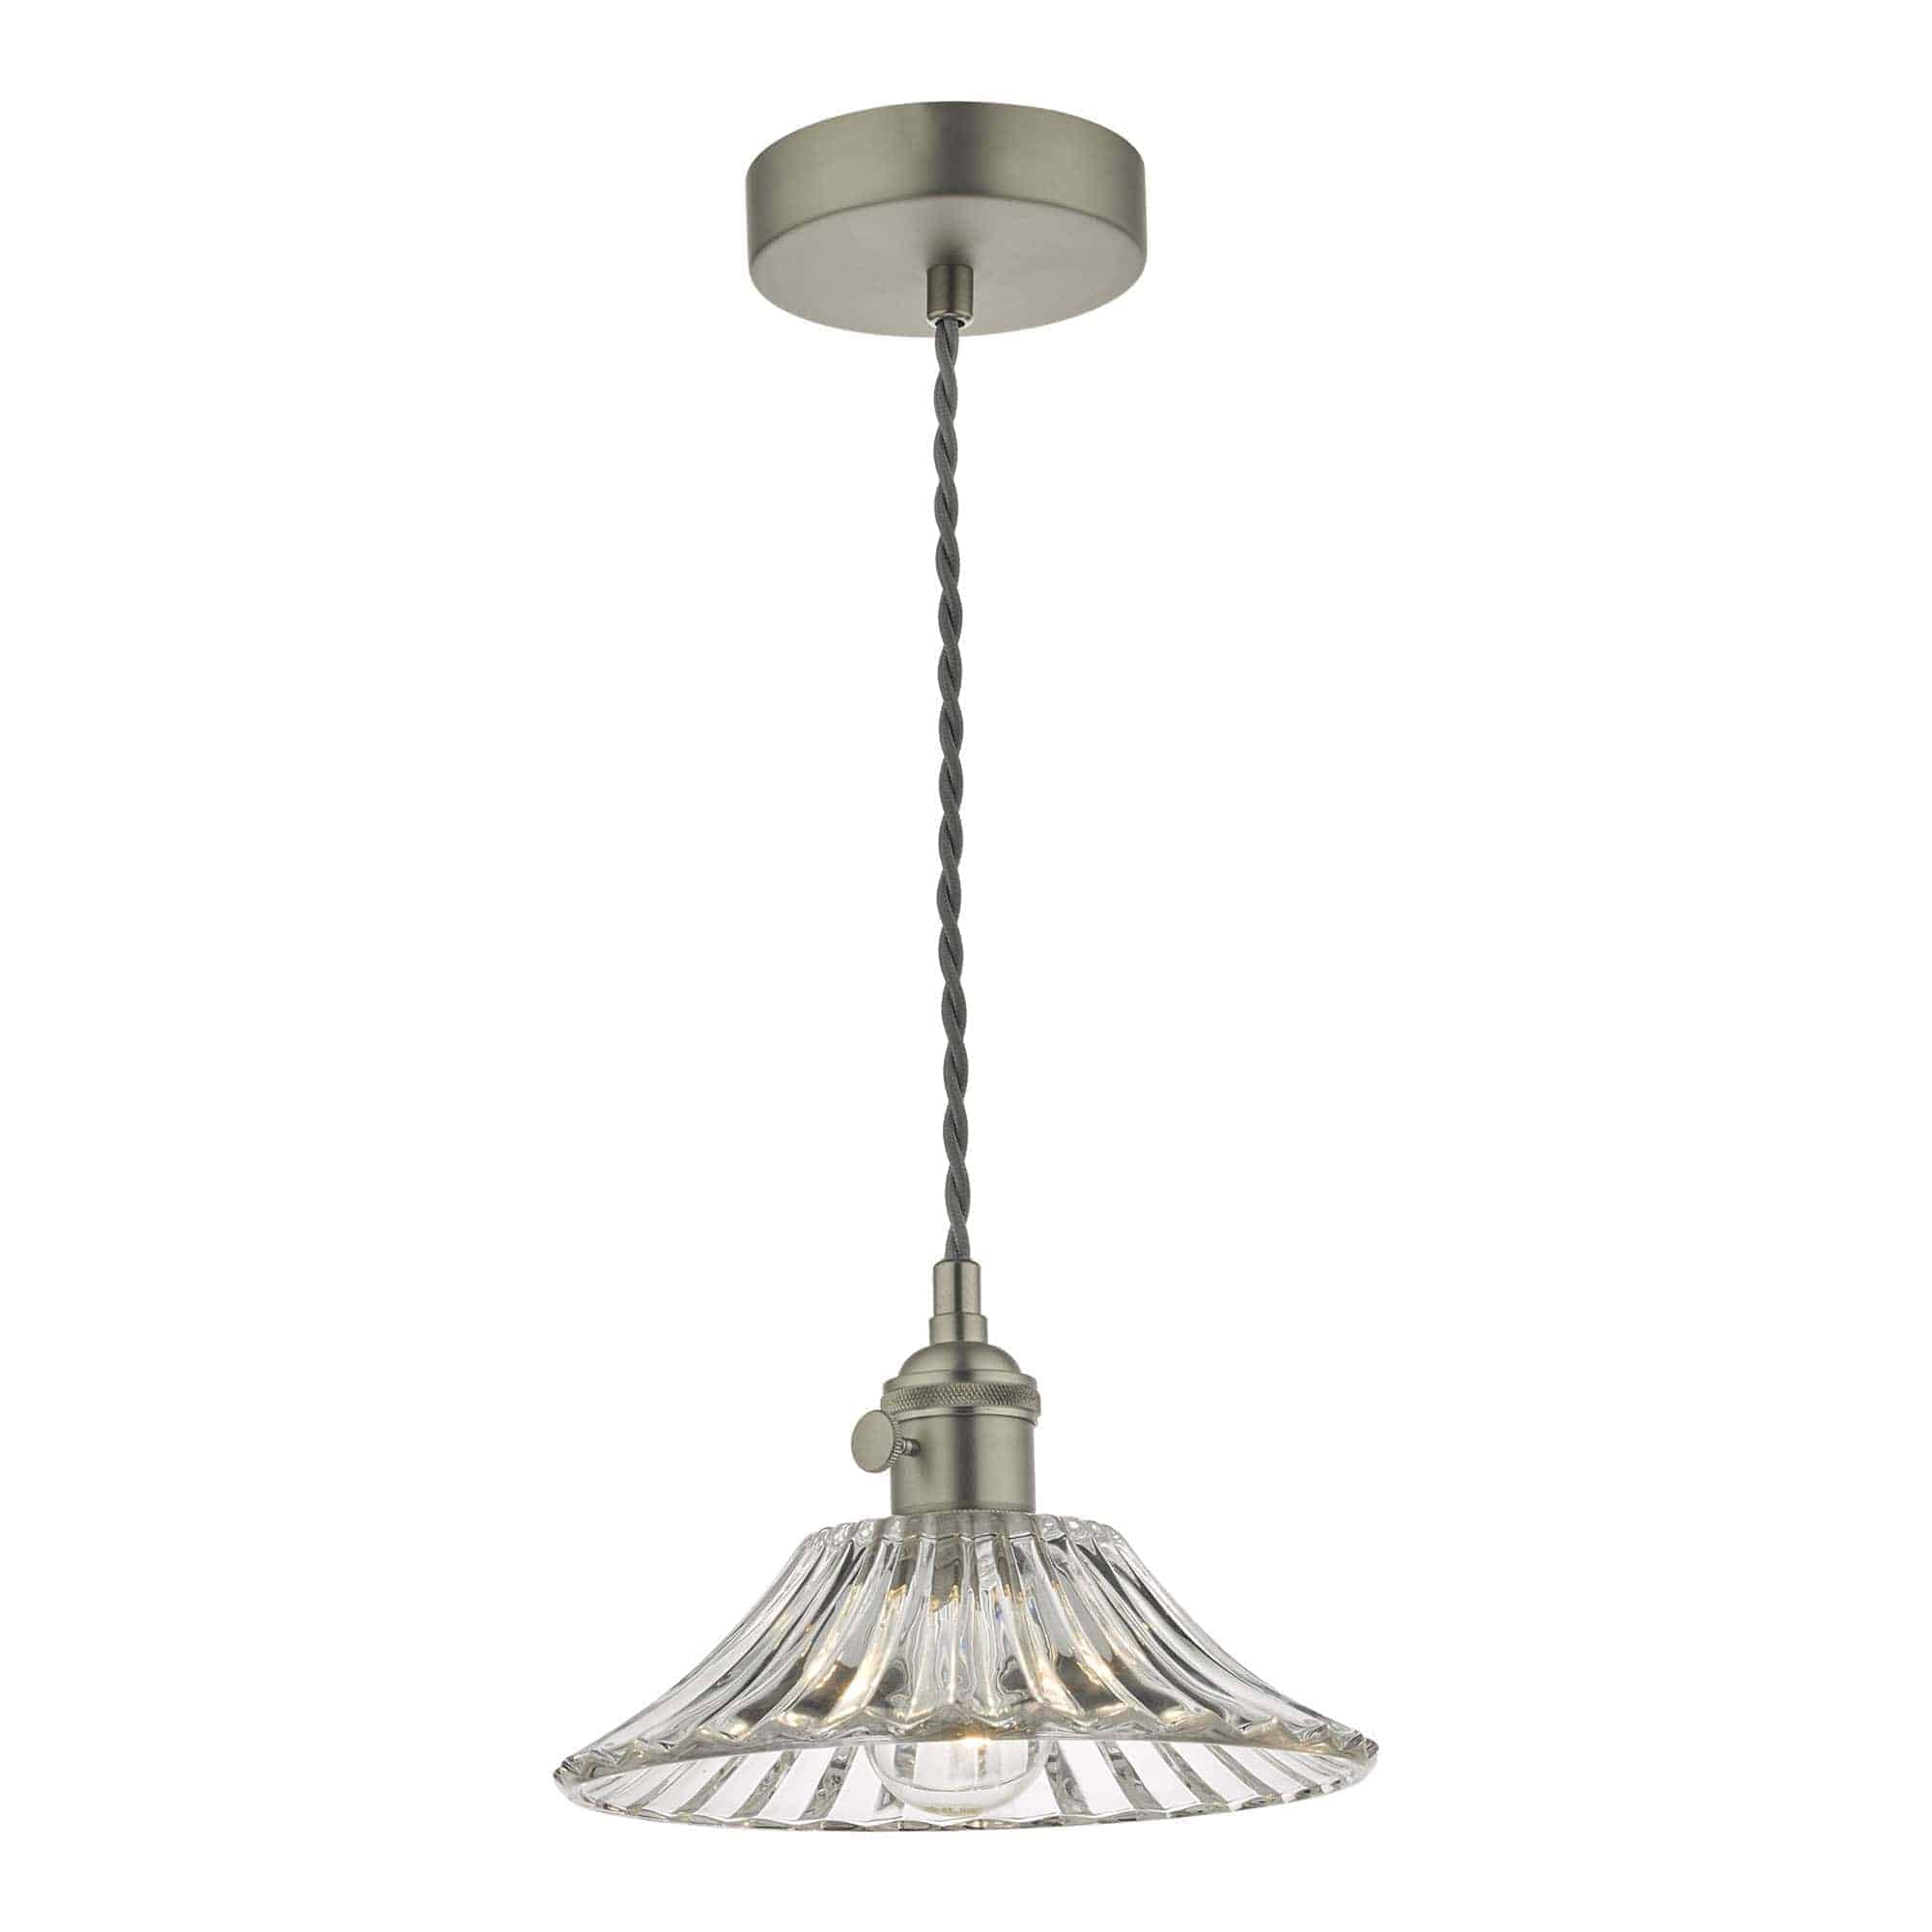 Dar HAD0161-04 Hadano 1 Light Pendant Antique Chrome With Flared Glass Shade